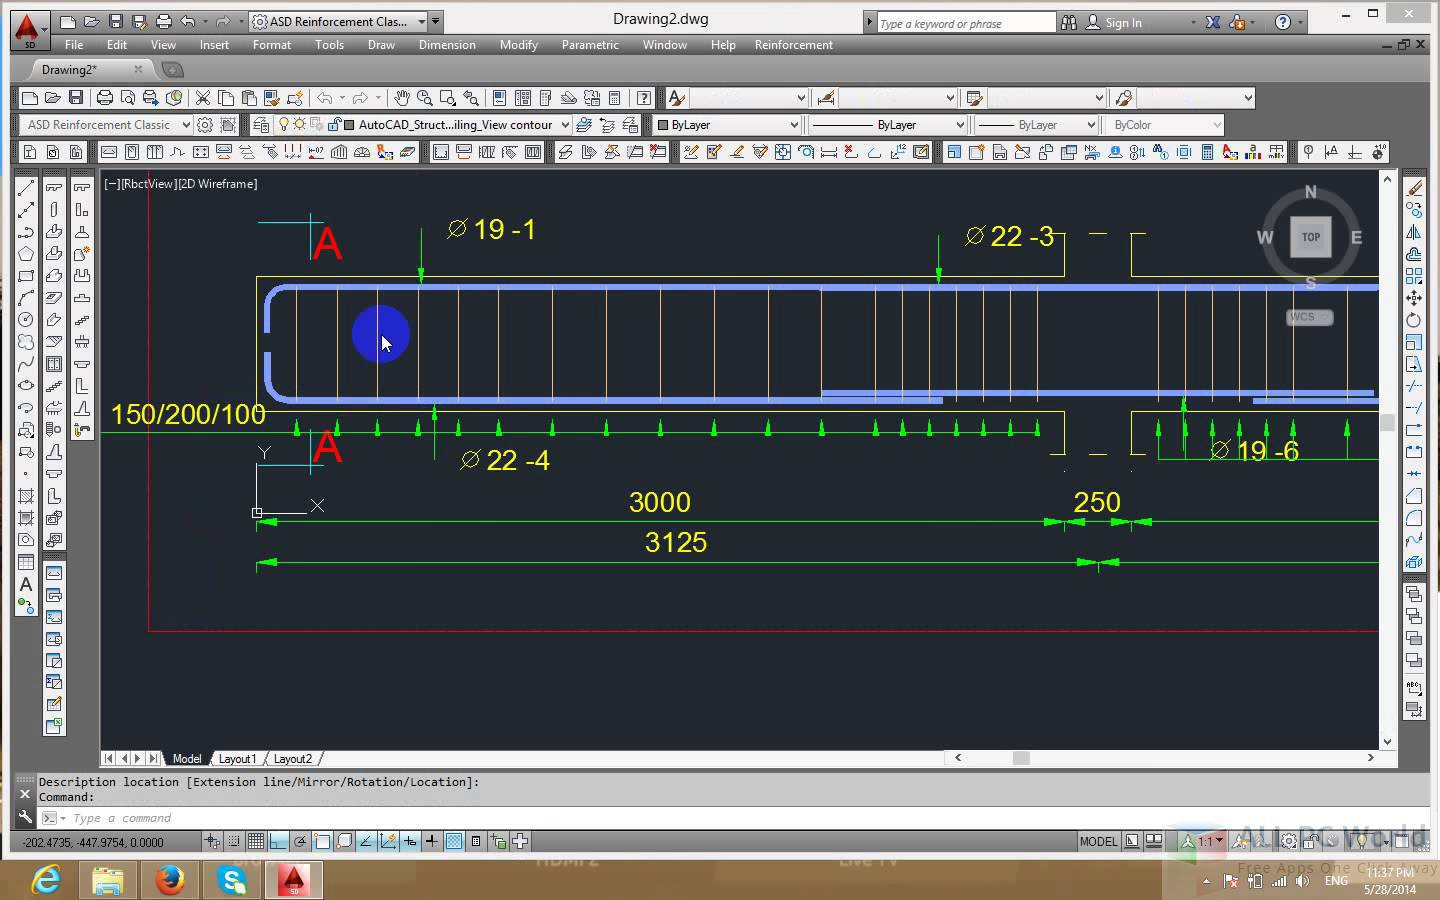 AutoCAD Structural Detailing 2015 Review